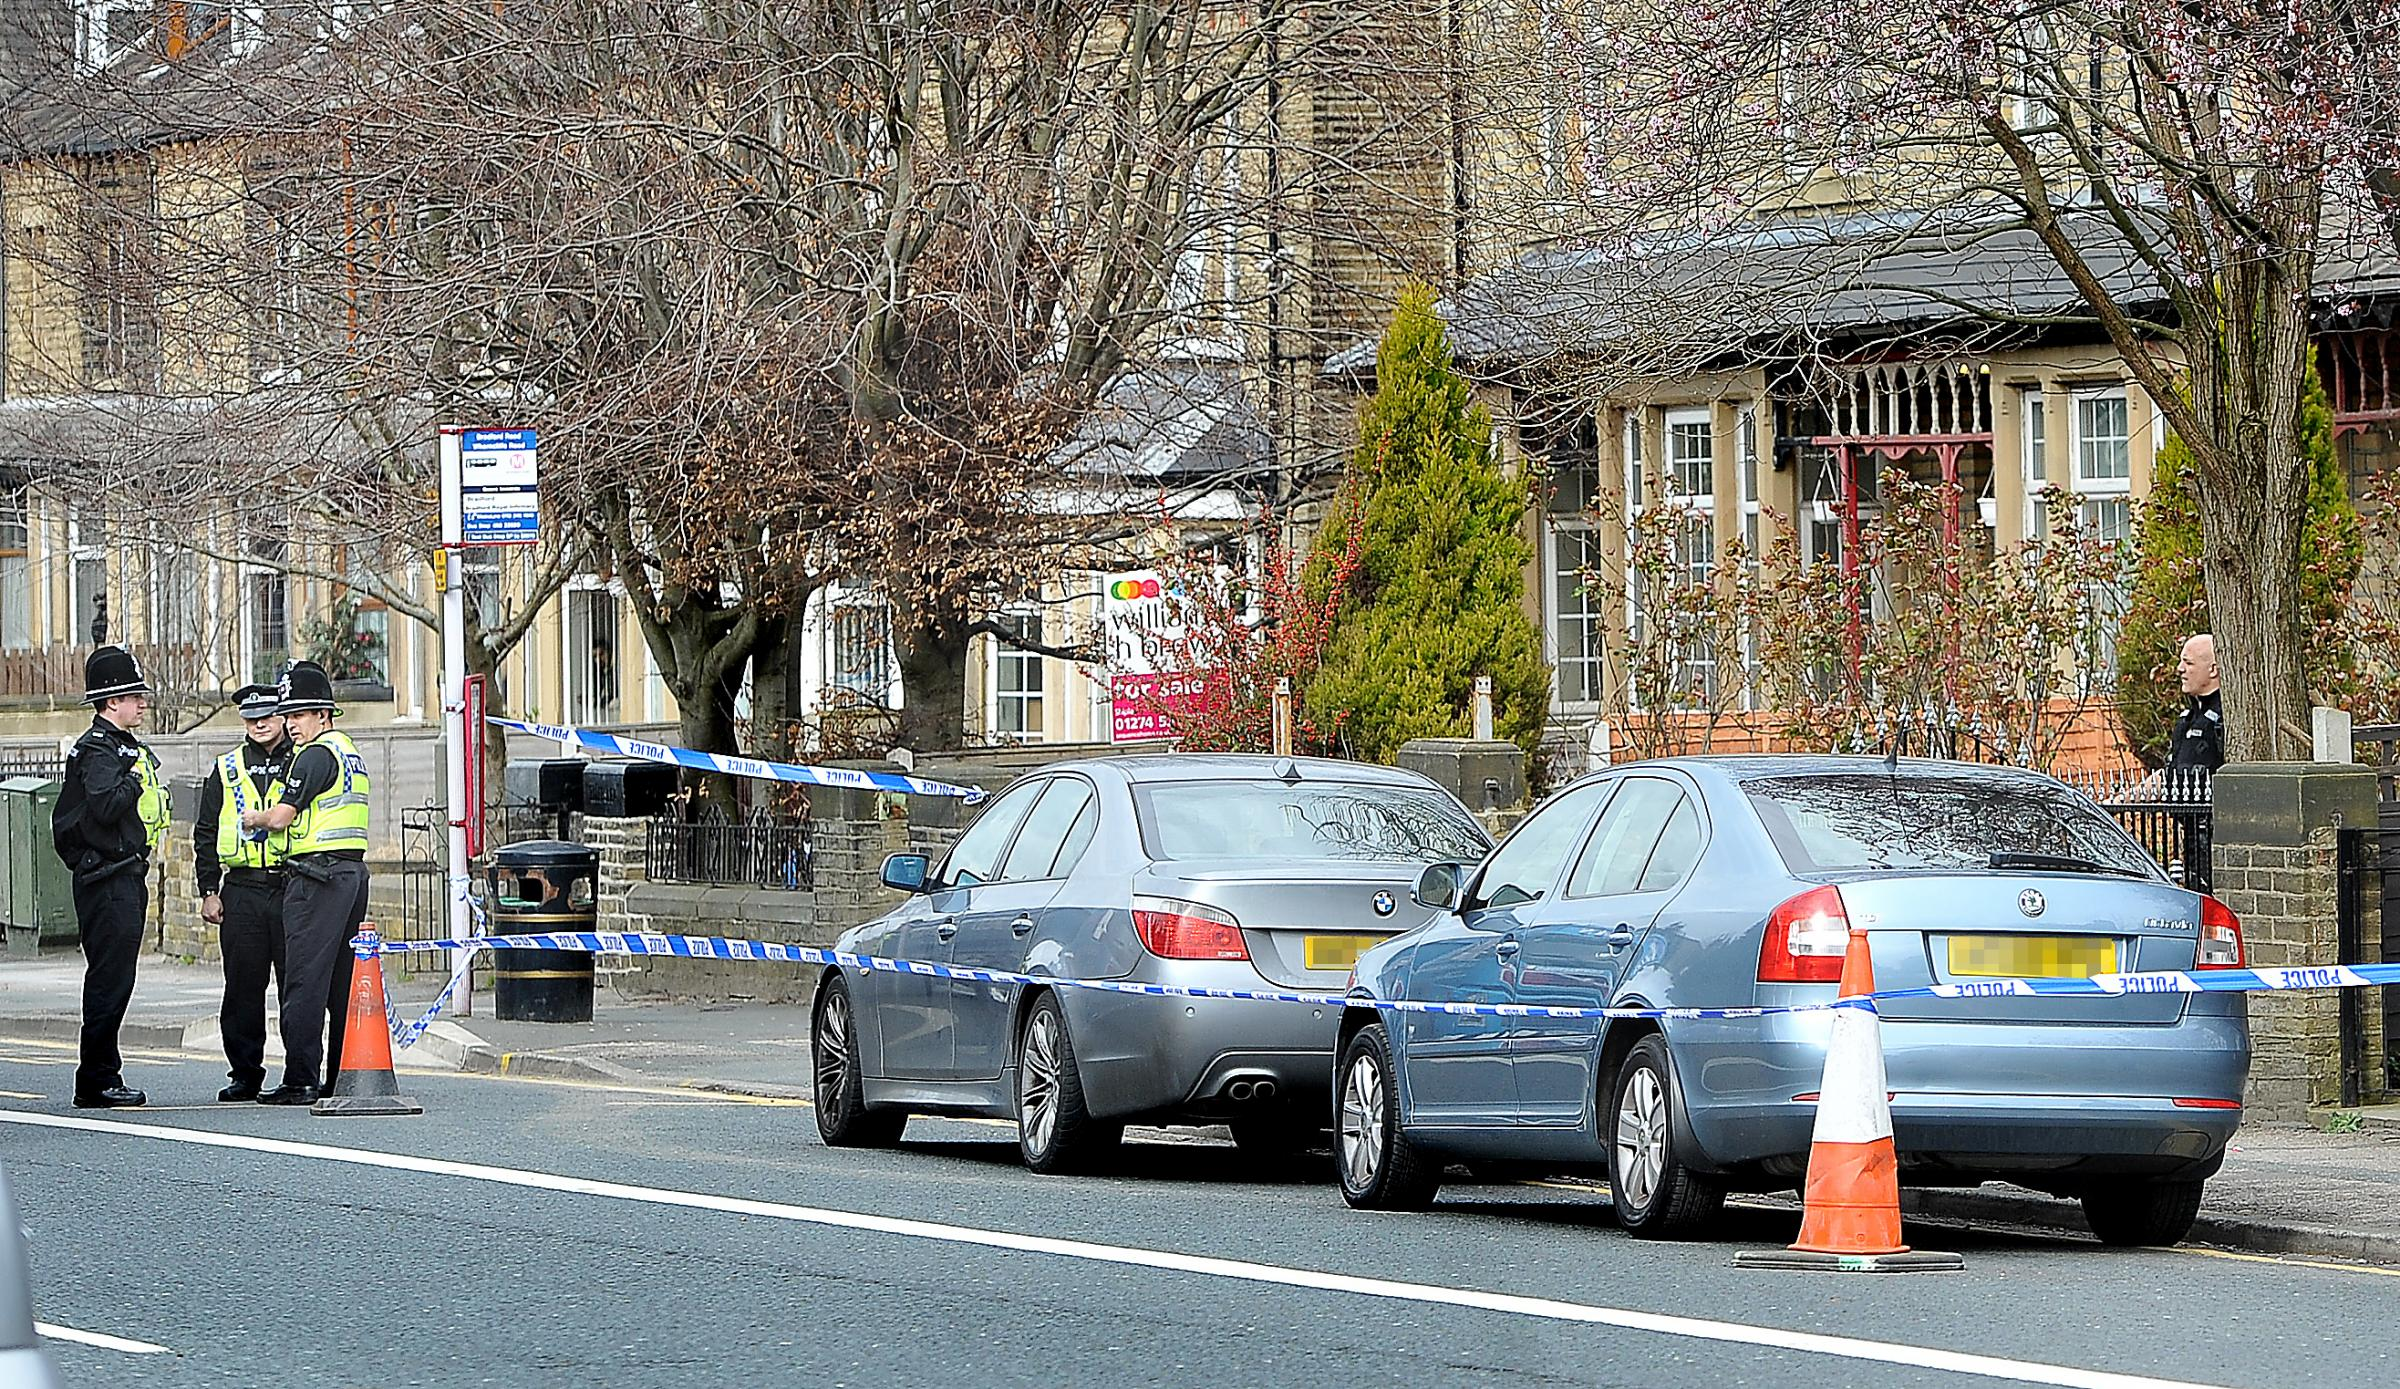 Police attend an incident and close off part of the pavement on Bradford Road opposite Redburn Road